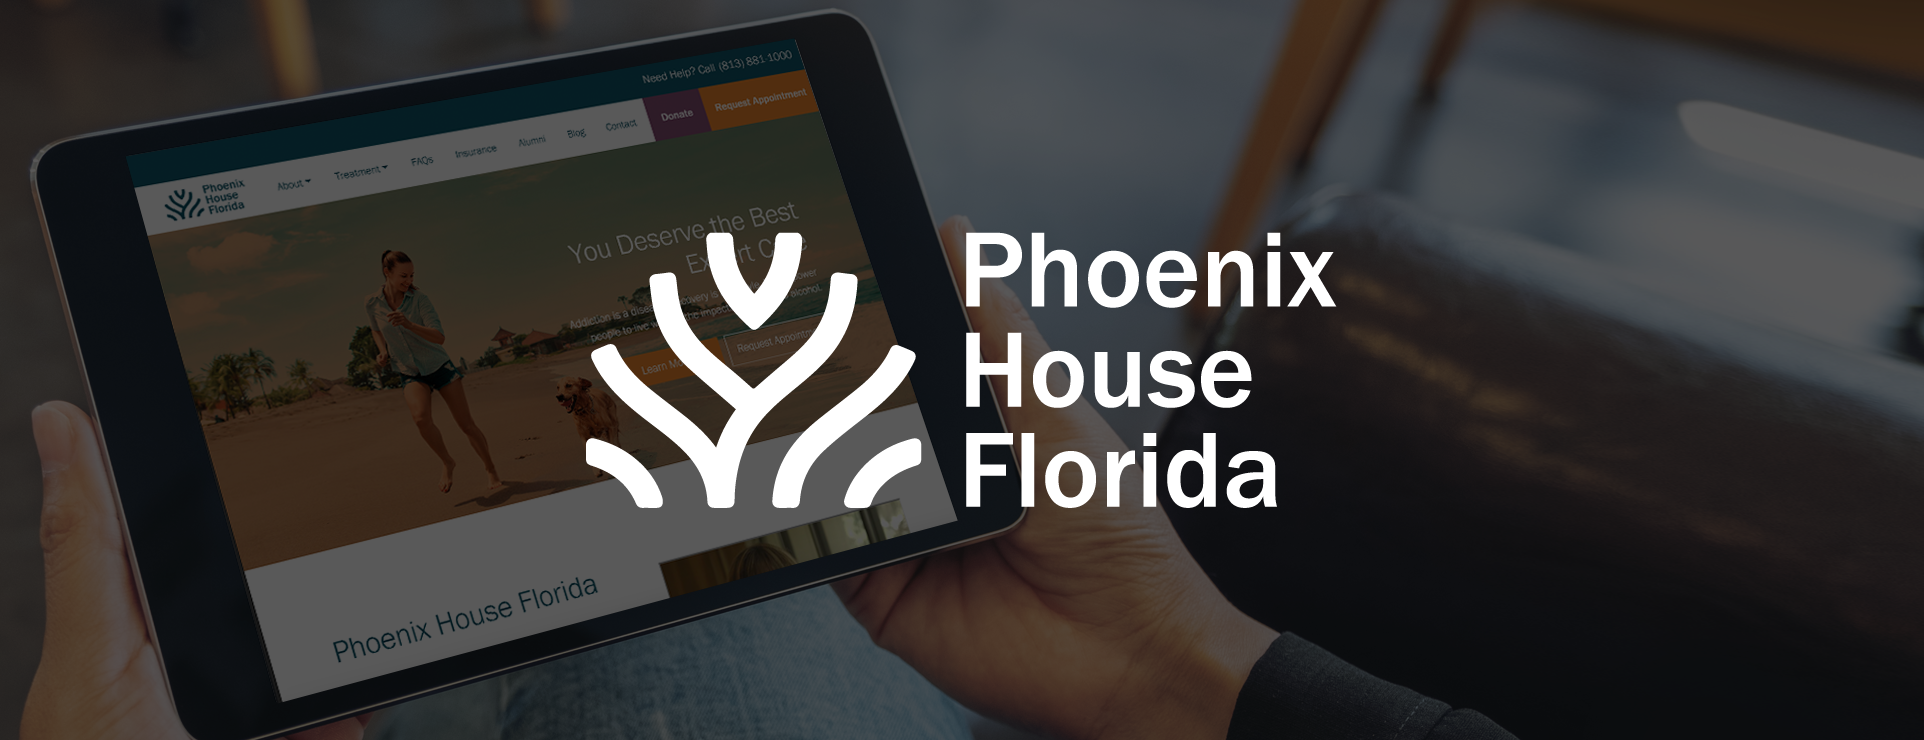 PhoenixHouse_HeaderImage